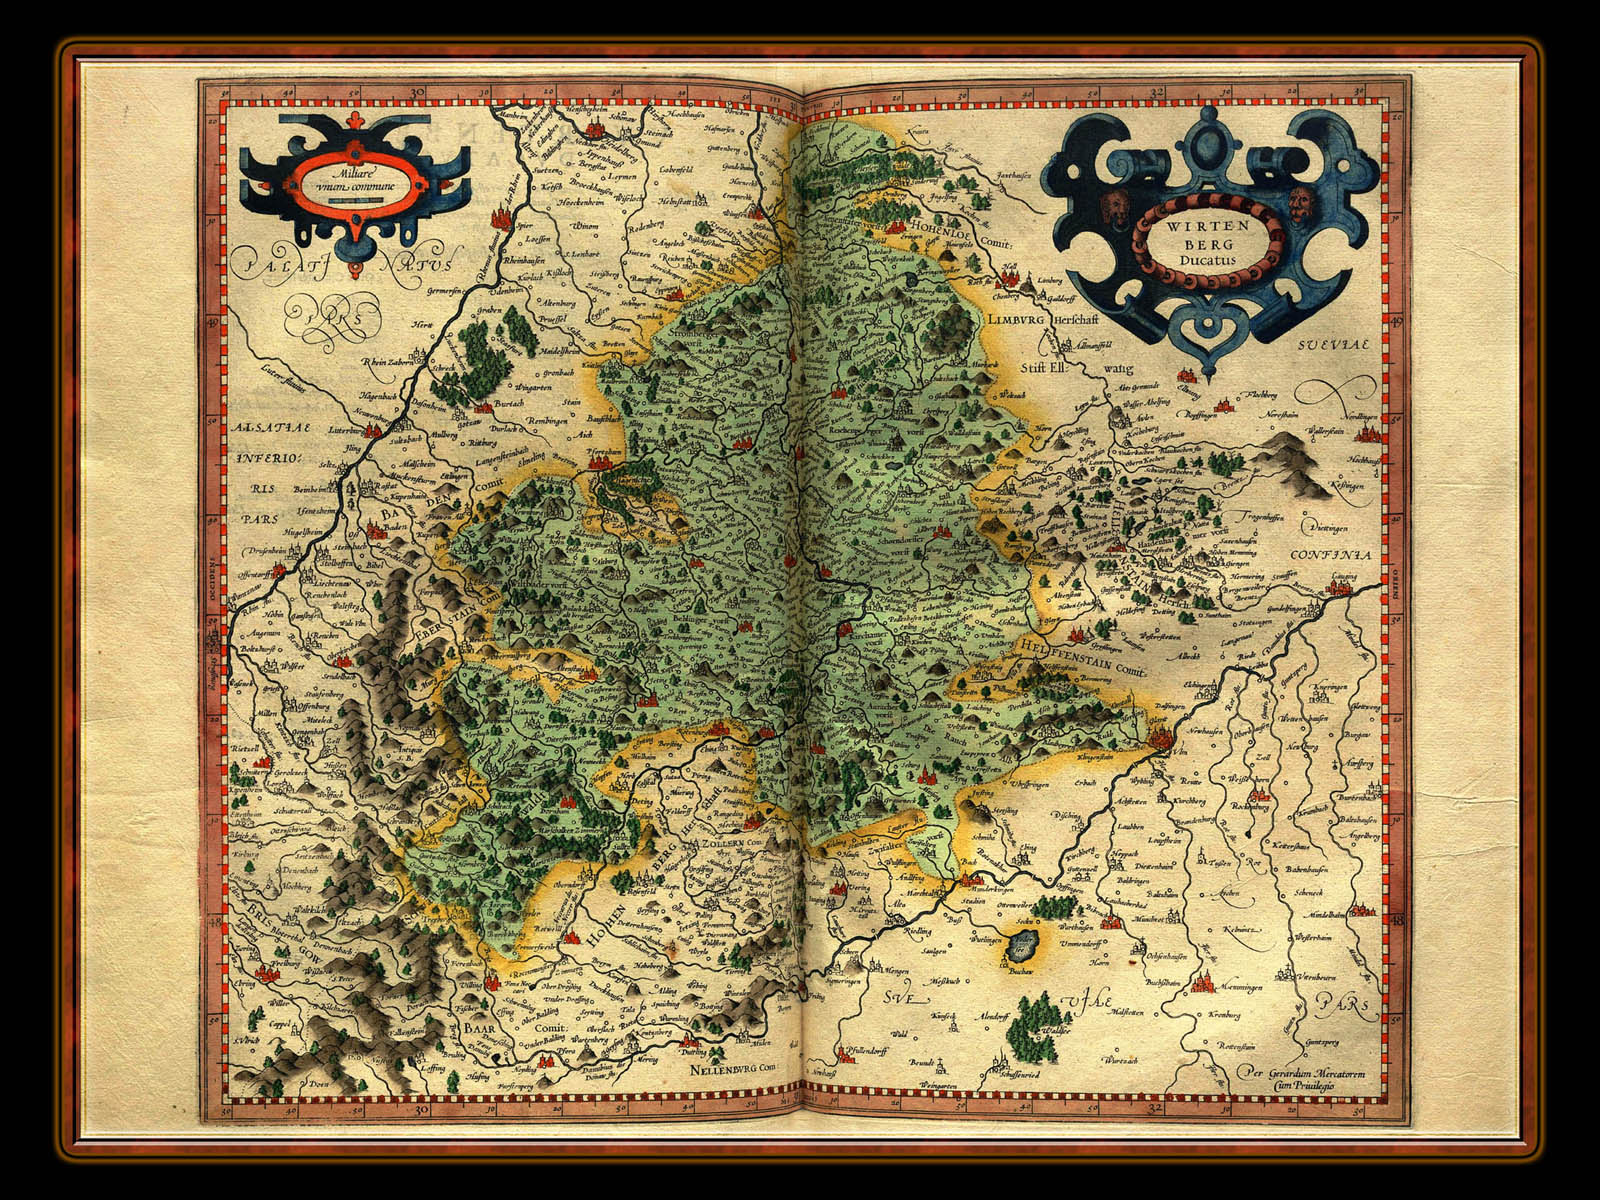 """Gerhard Mercator 1595 World Atlas - Cosmographicae"" - Wallpaper No. 40 of 106. Right click for saving options."